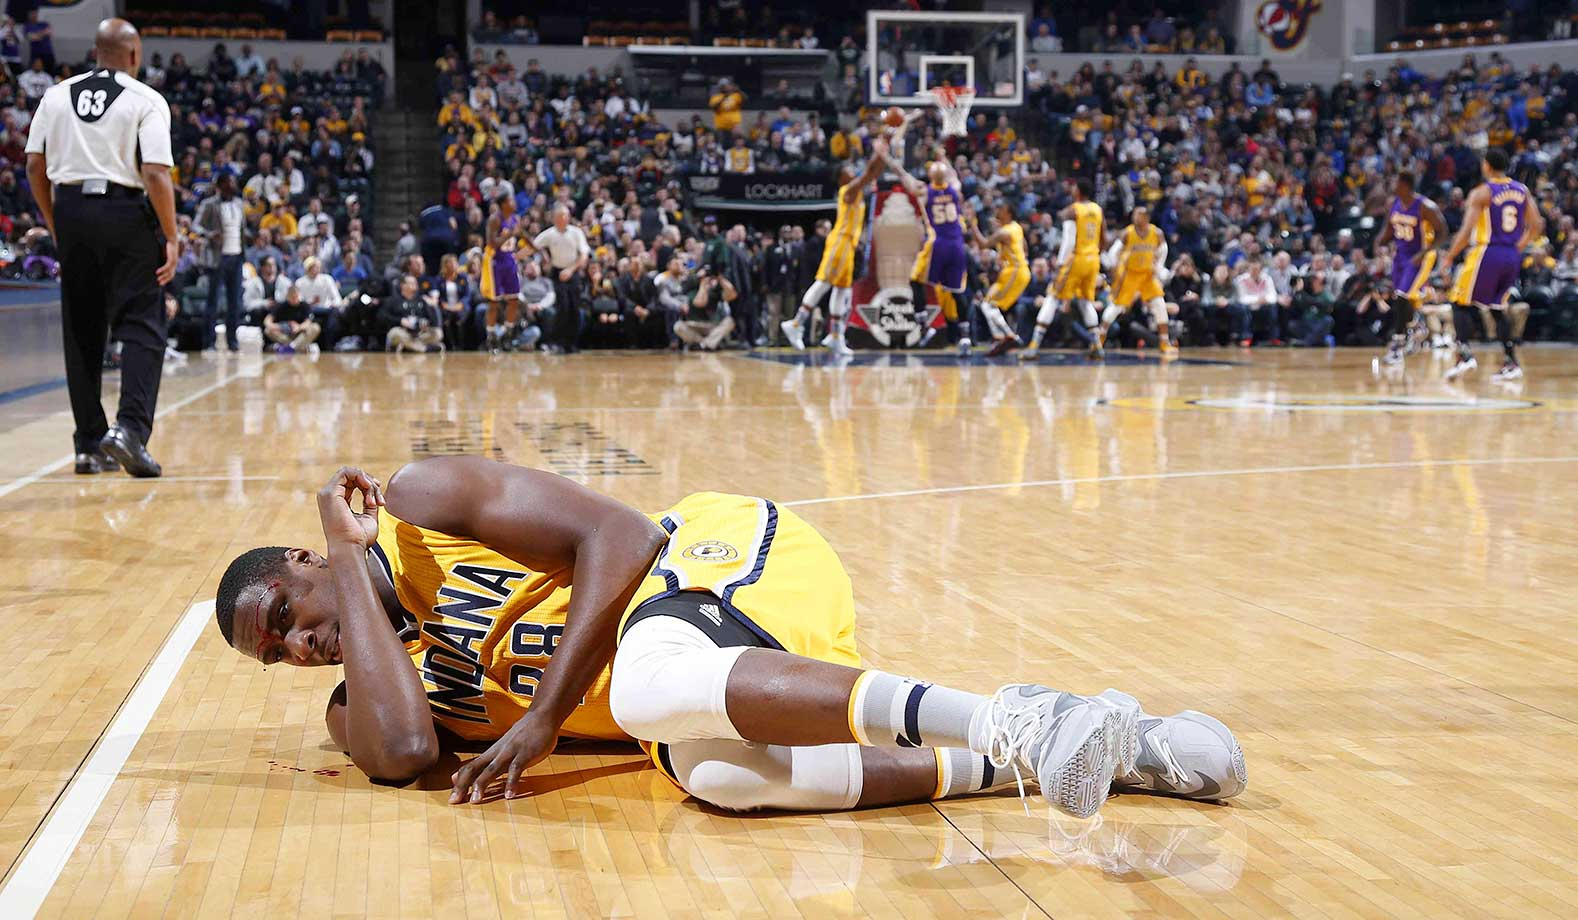 Ian Mahinmi of Indiana lies bleeding on the floor after being hit in the forehead against the Lakers.